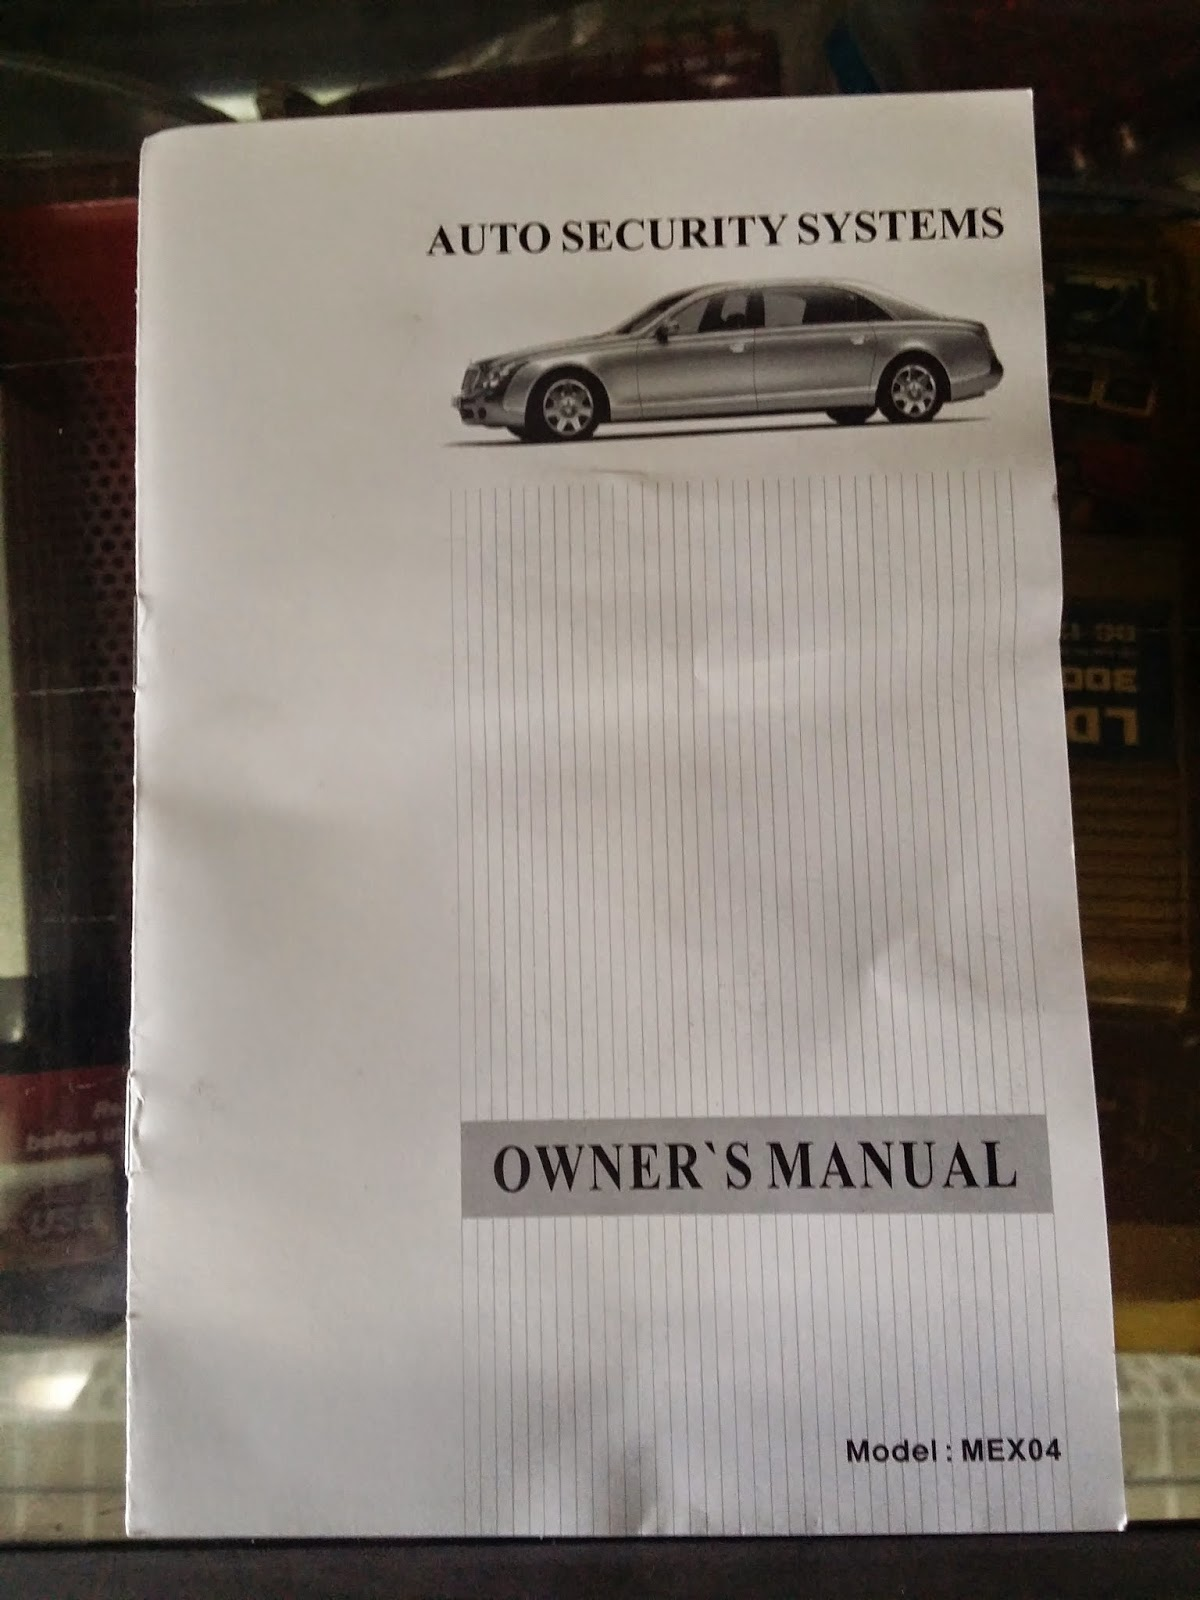 Omega Cobra Car Alarm Wiring Diagram Auto Security To Disable And Enable The Valet Mode For Mobilizer My